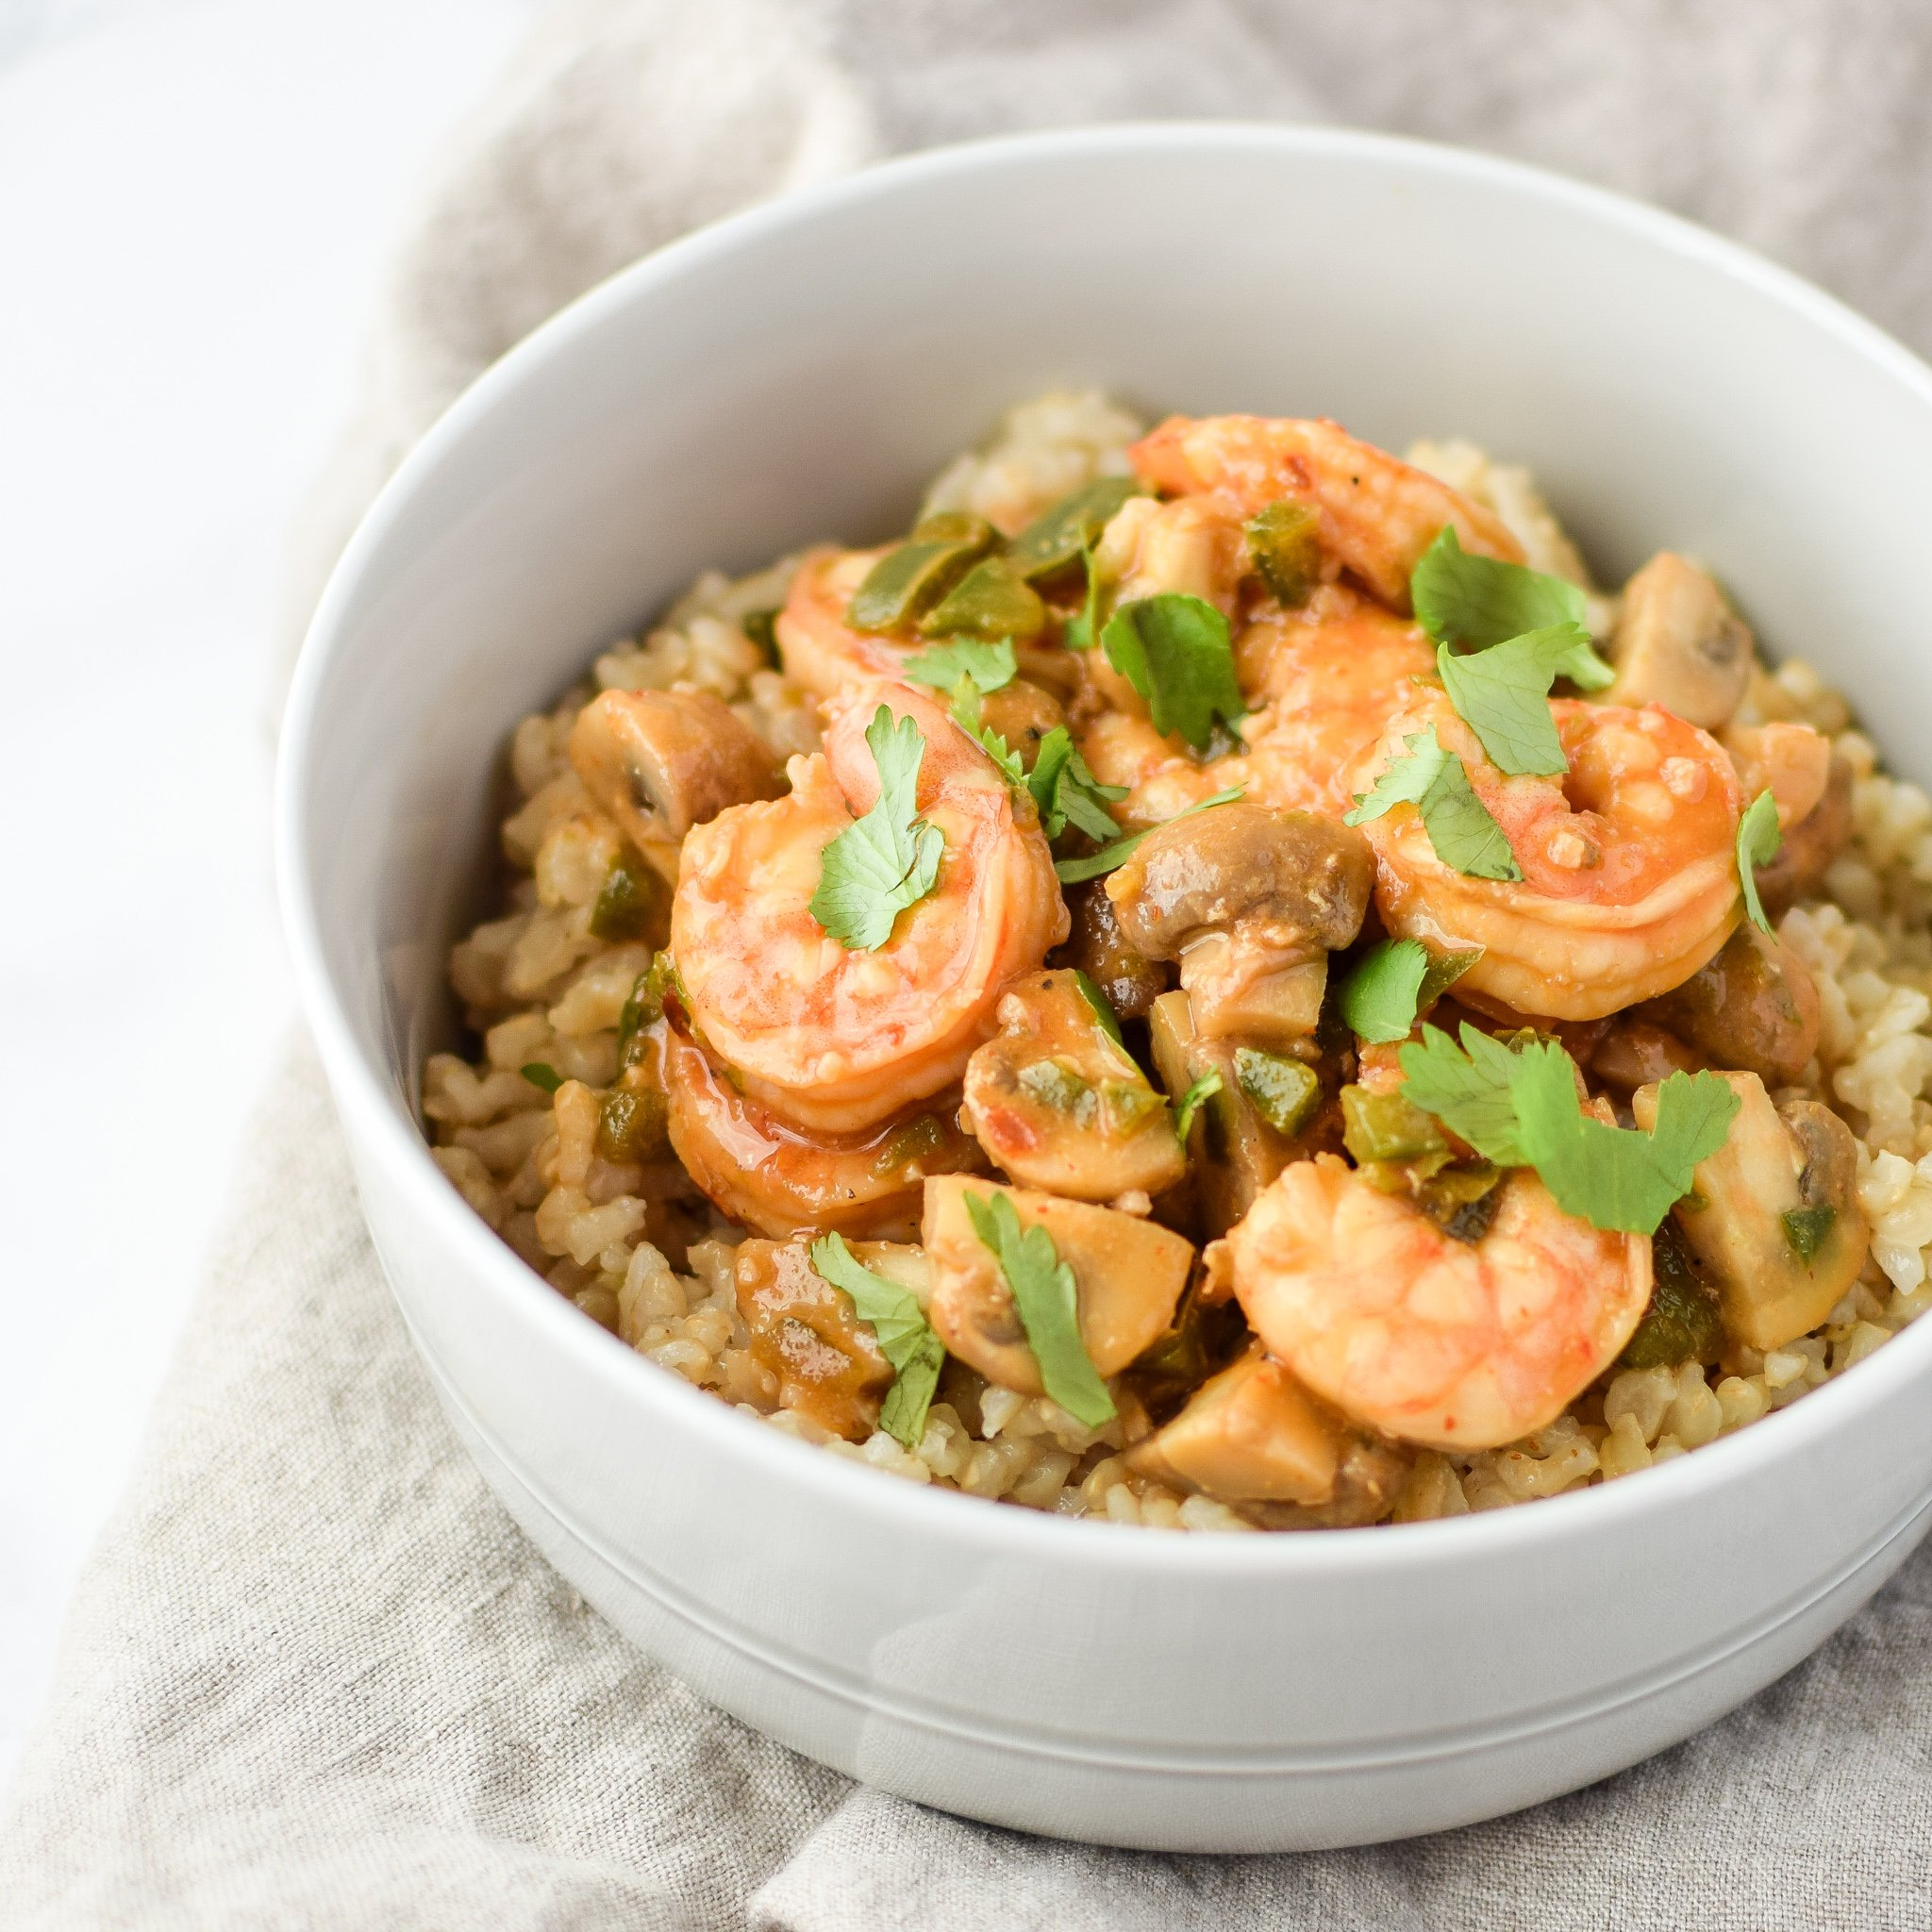 Easy Jalapeño Mushroom Shrimp Stir-Fry For Two recipe